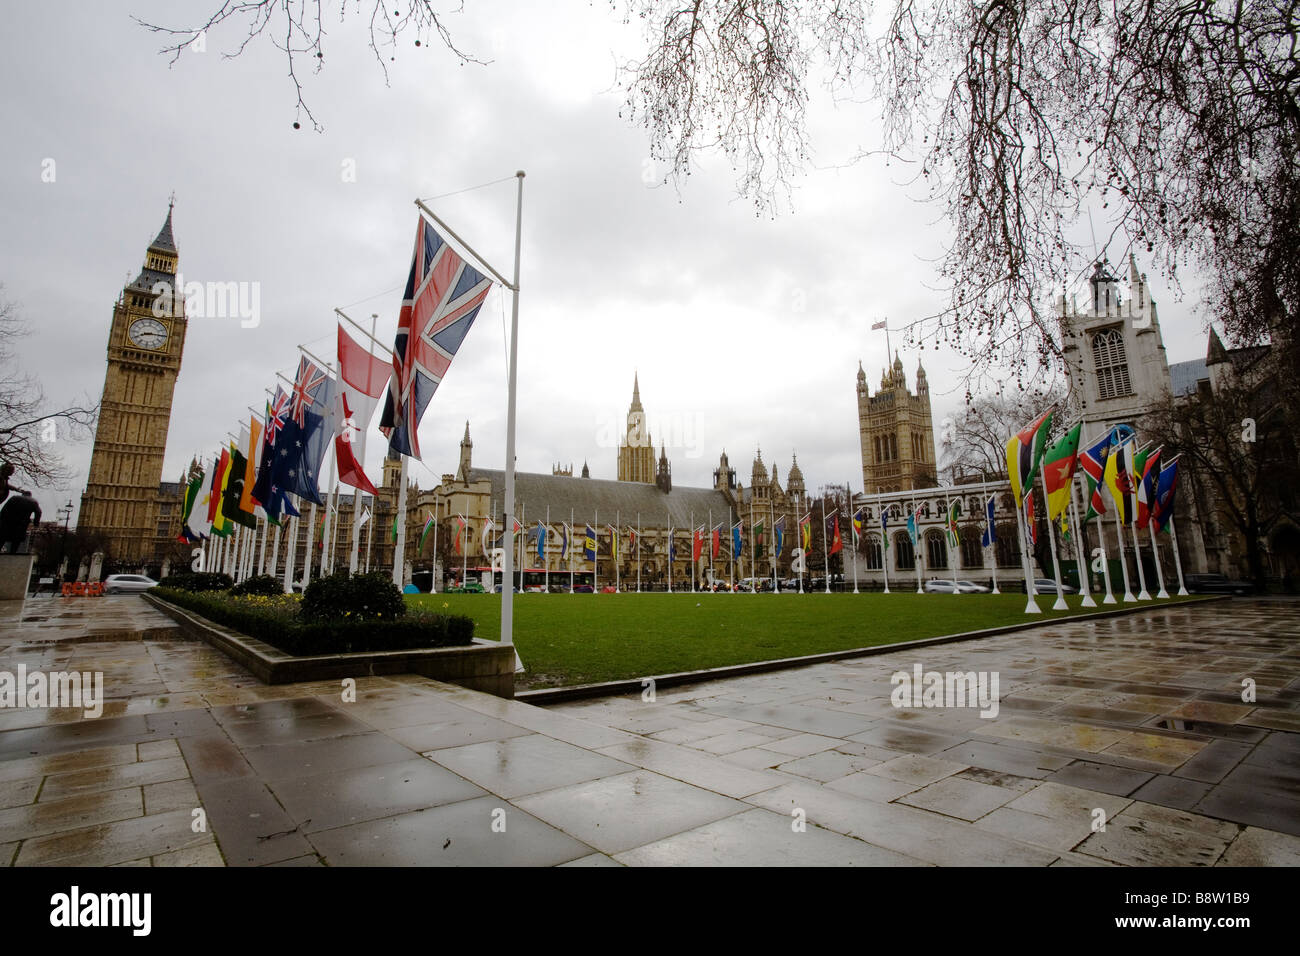 Parliament Square with the flags of the Commonwealth. - Stock Image